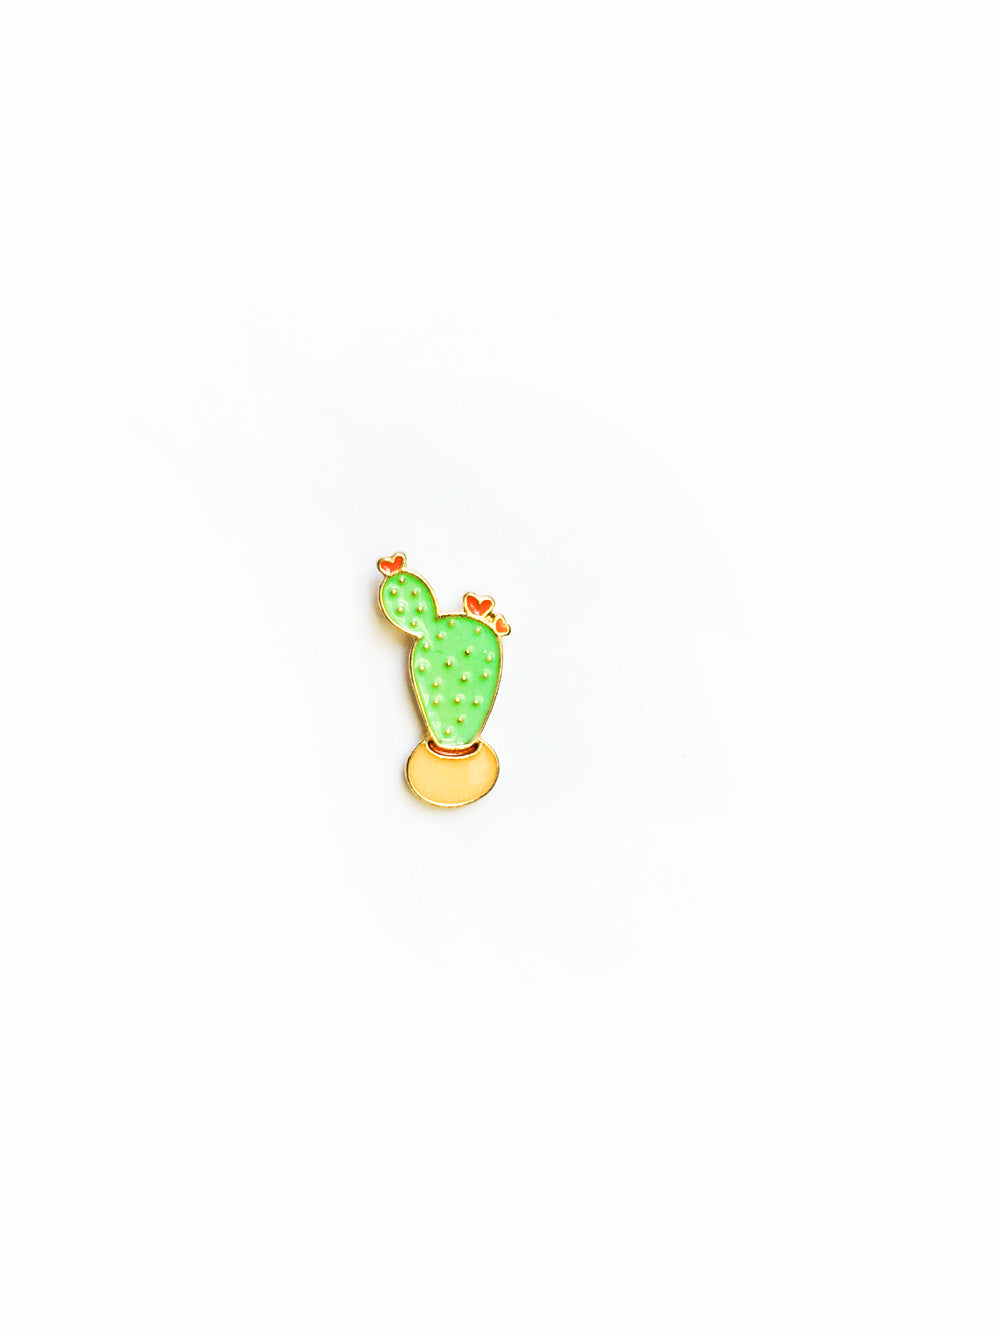 Yellow Potted Cactus Enamel Pin